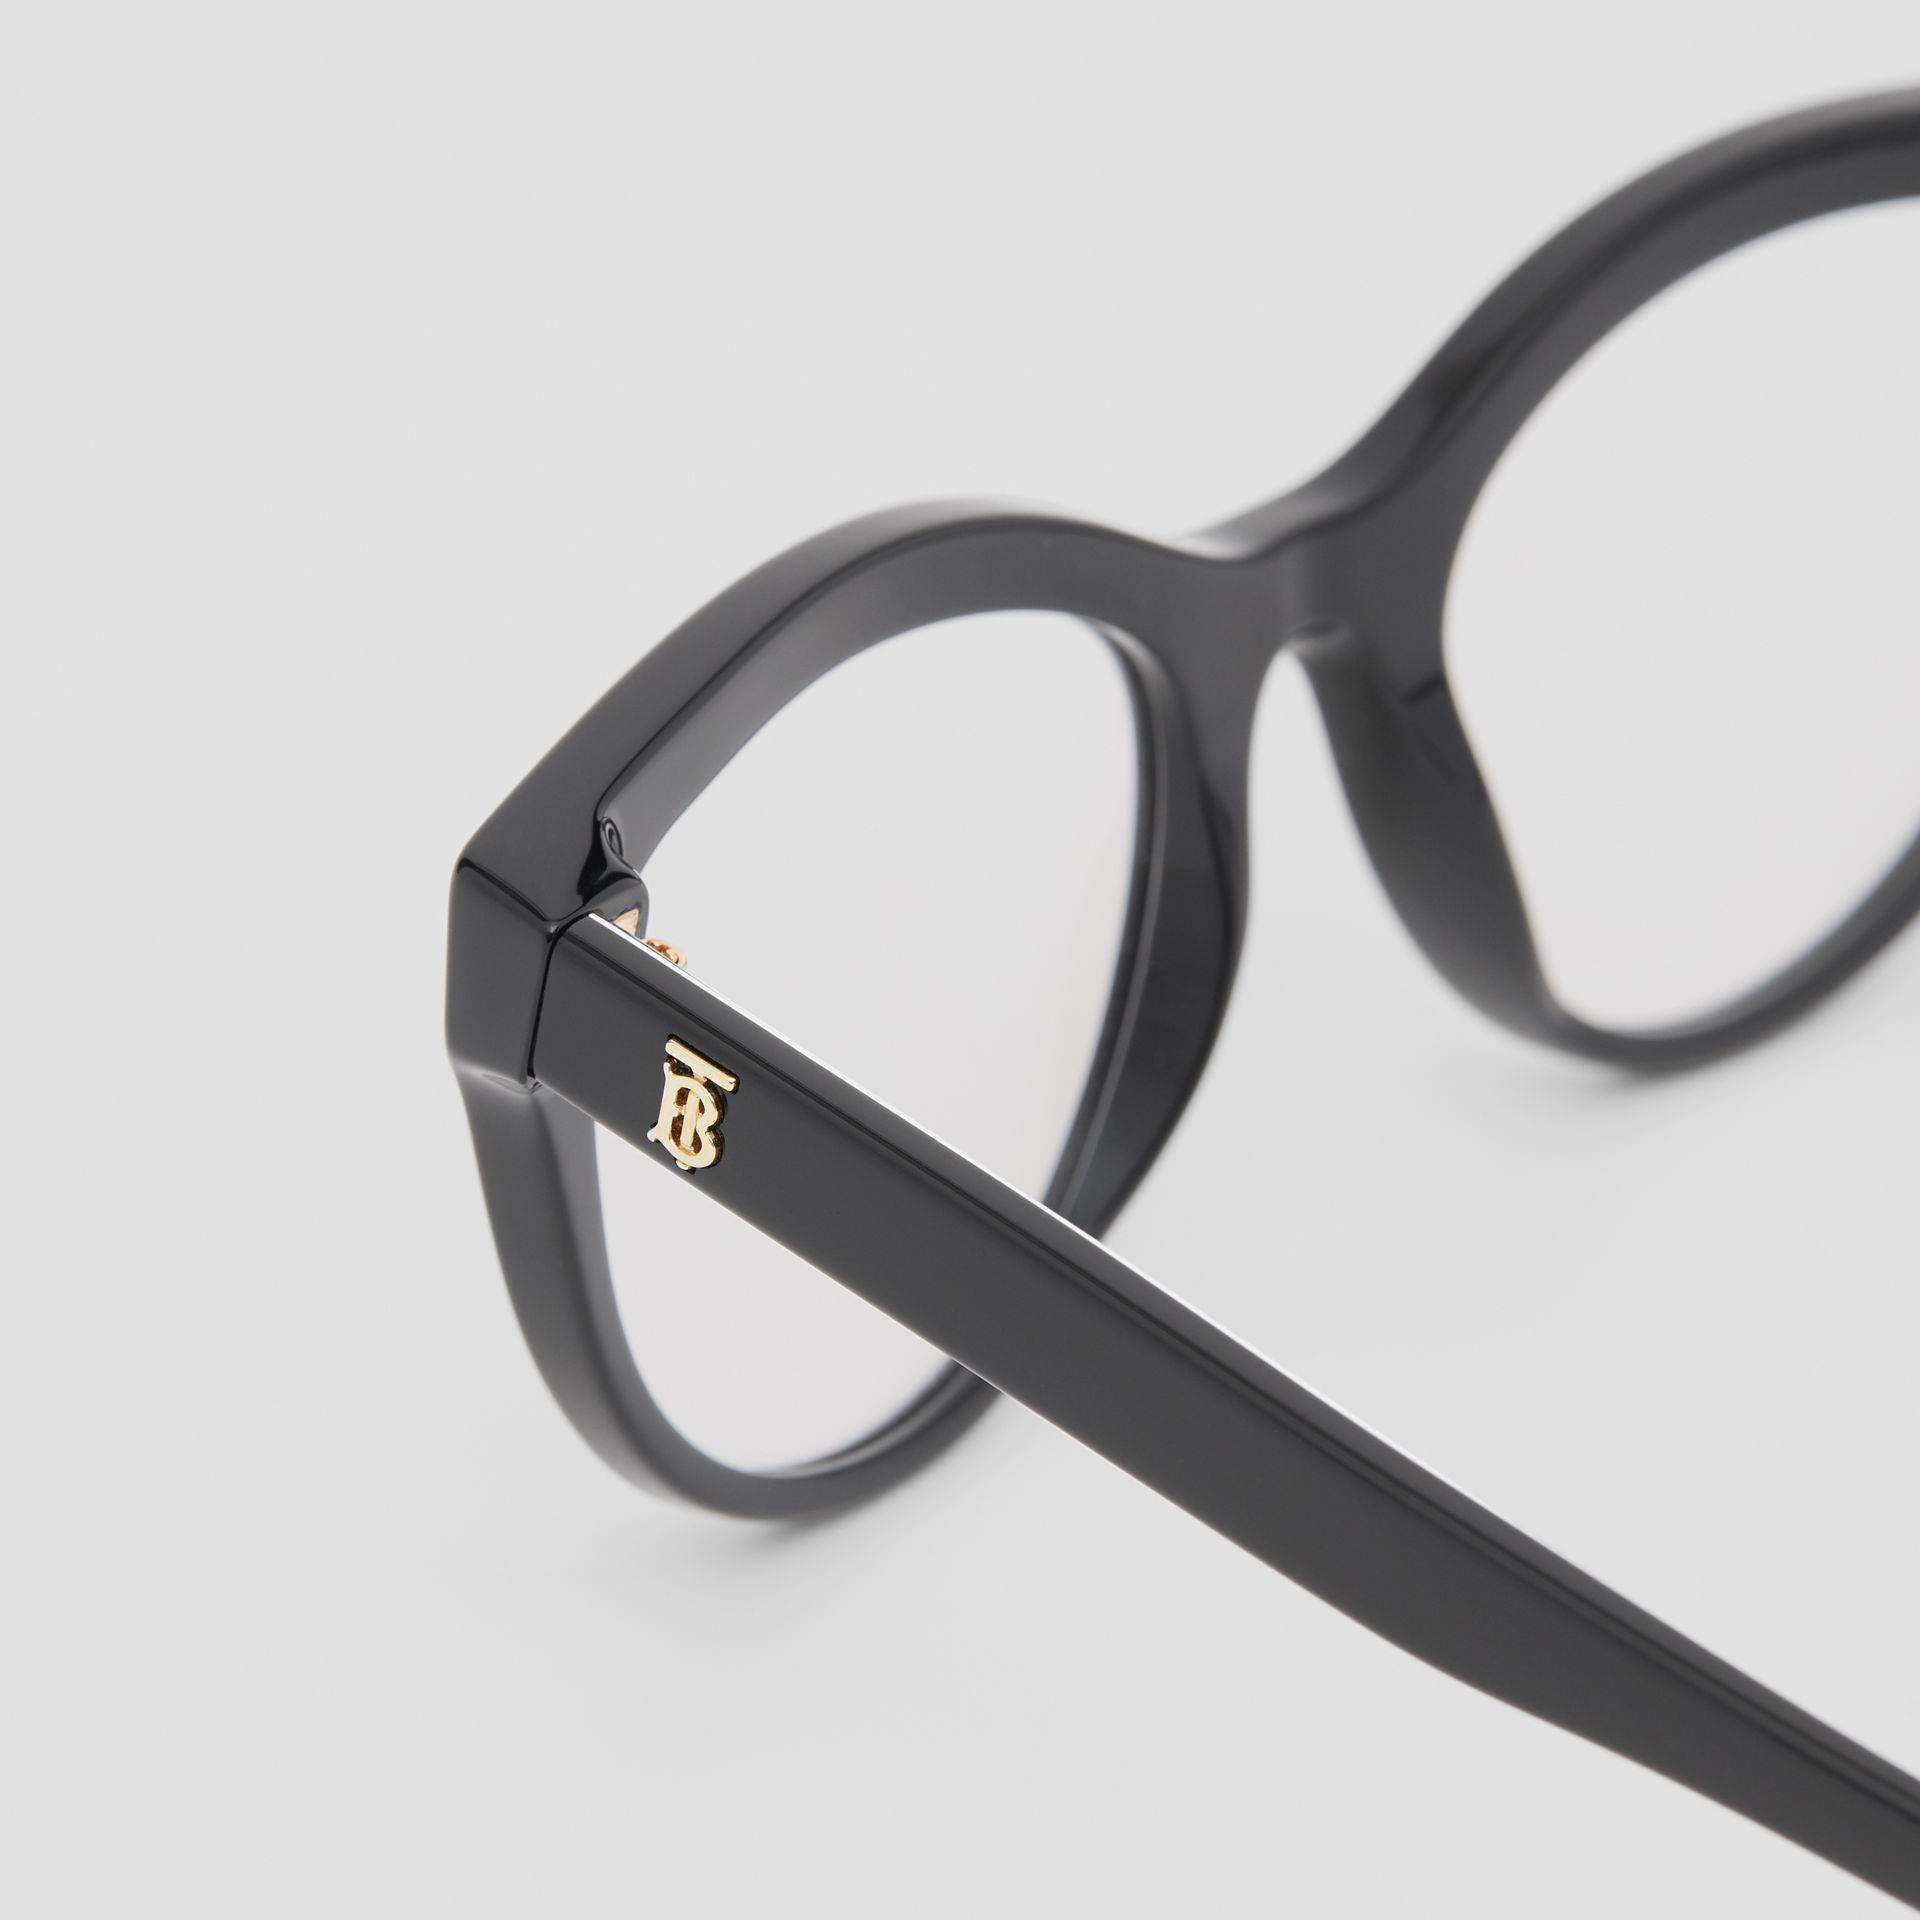 Monogram Print Detail Cat-eye Optical Frames in Black/vermilion - Women | Burberry Canada - gallery image 1